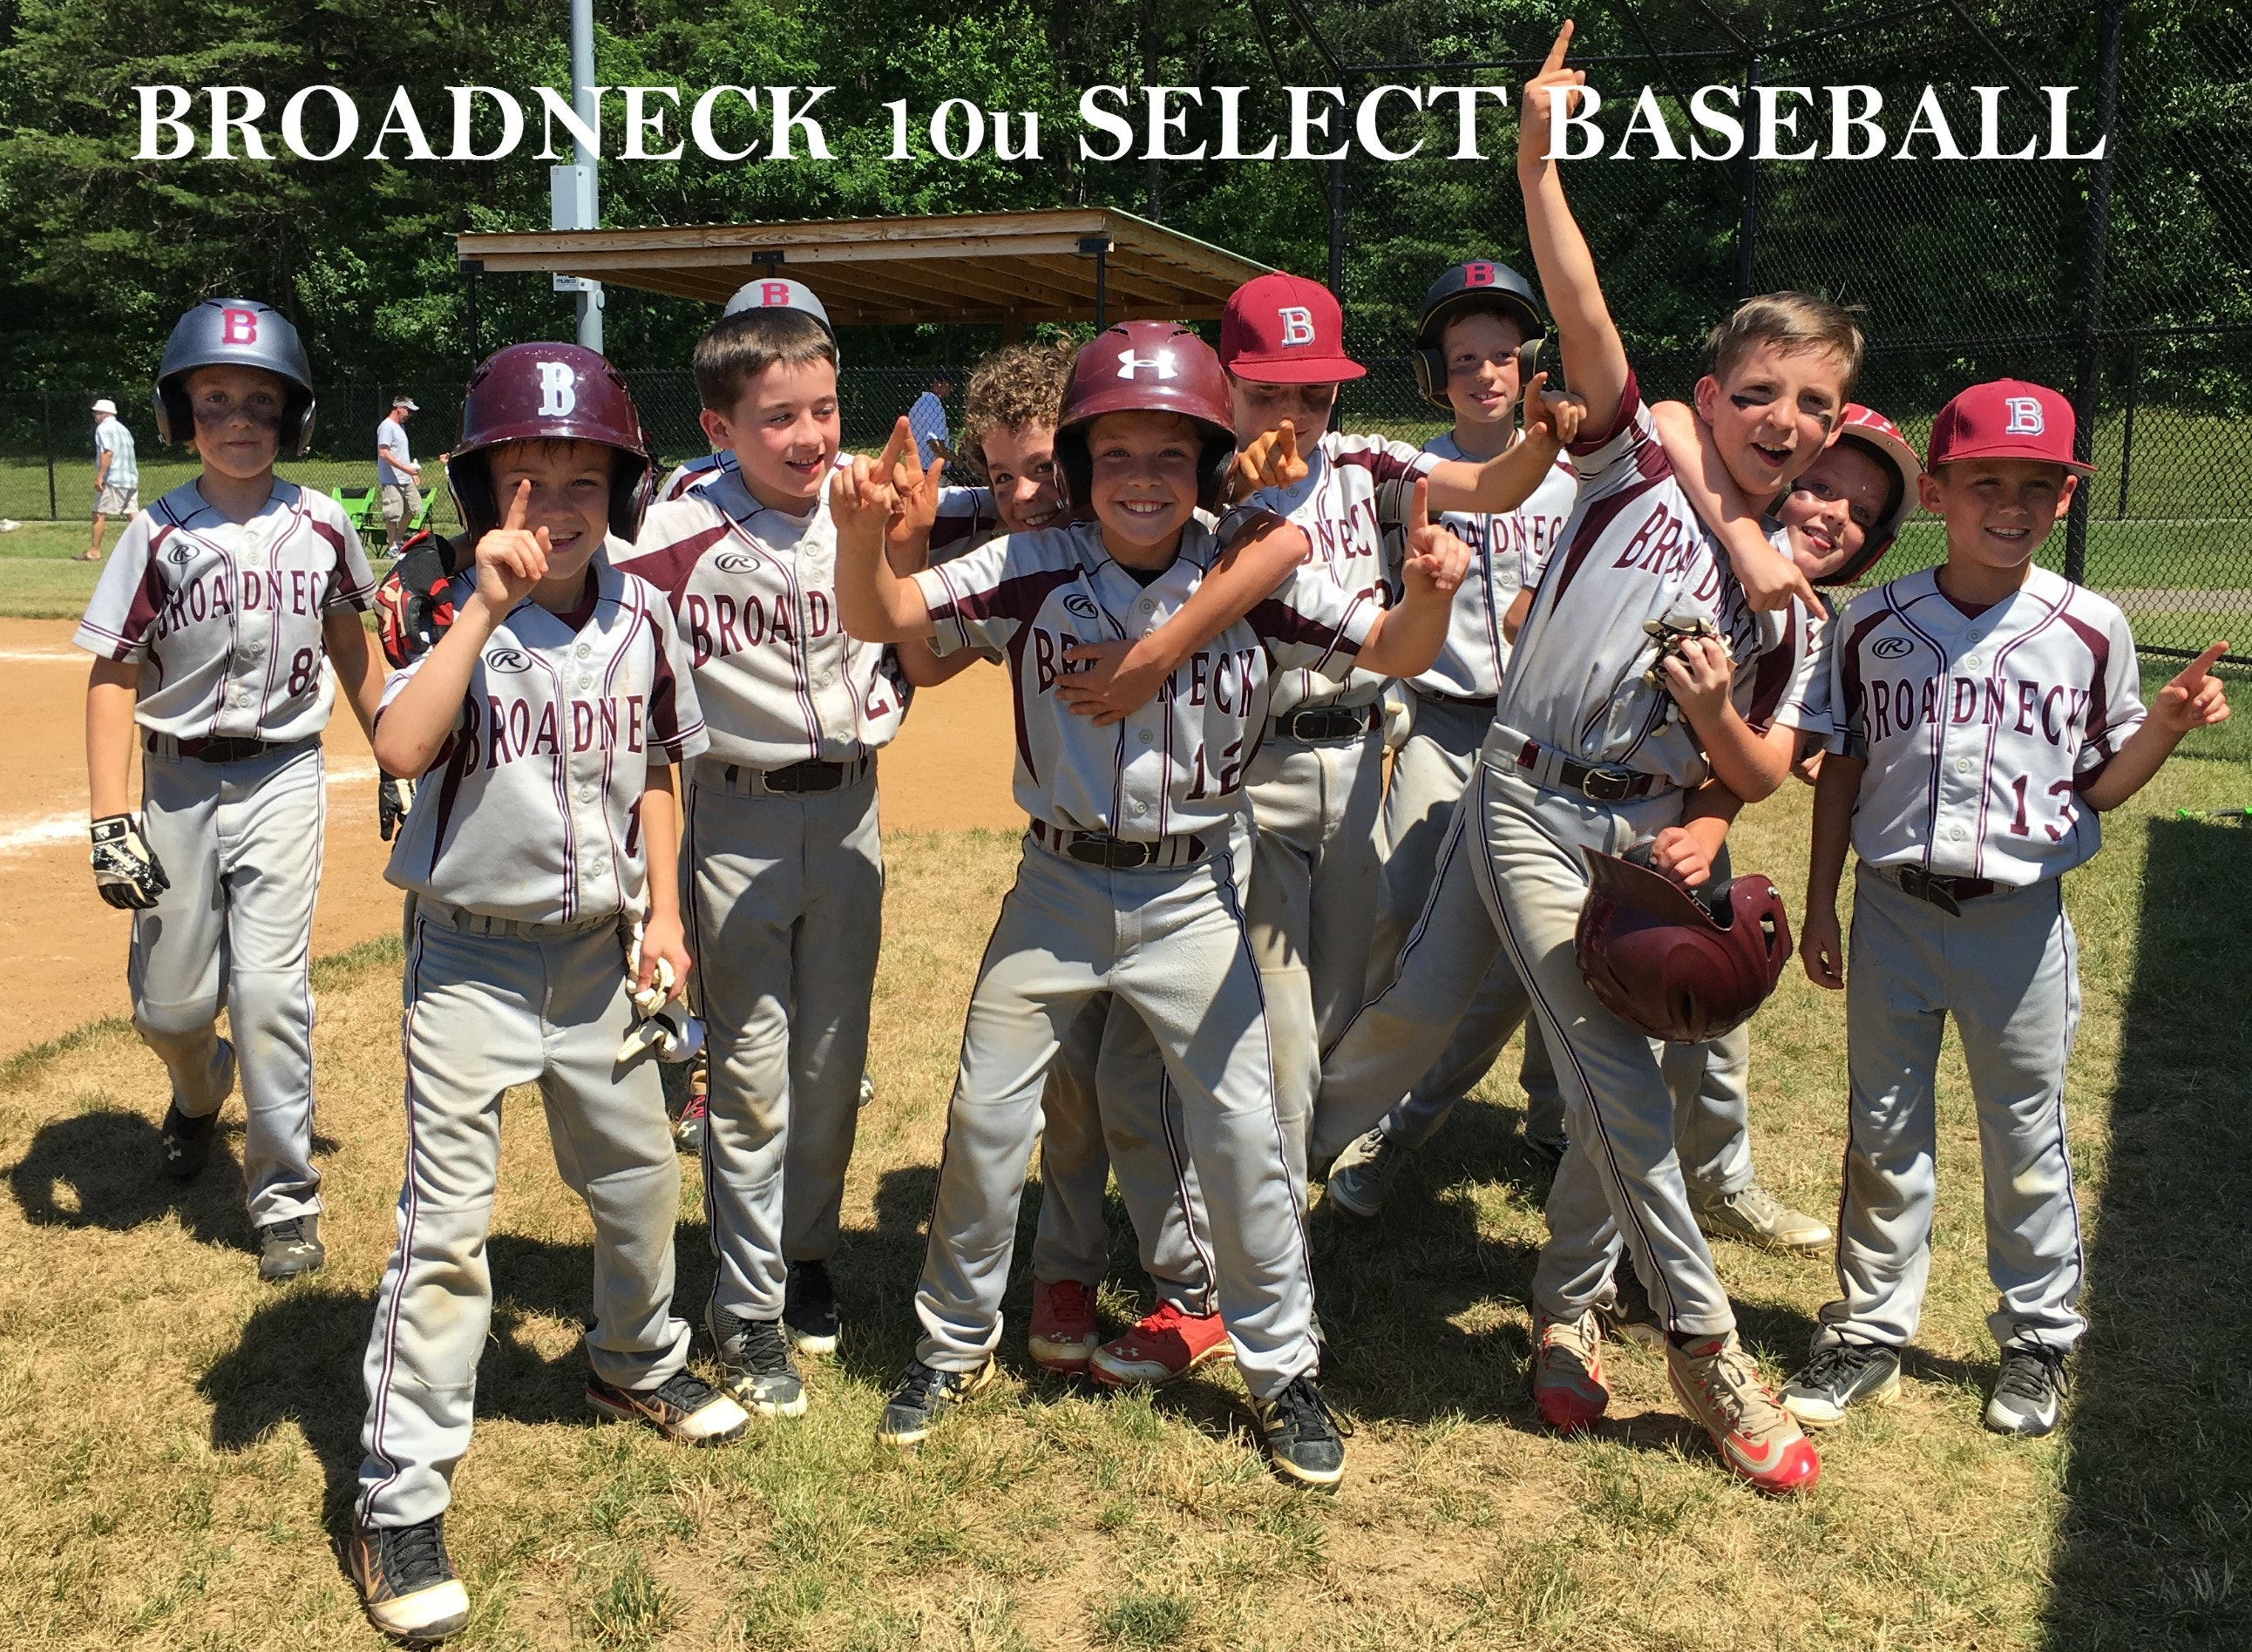 Broadneck 10u Select Baseball